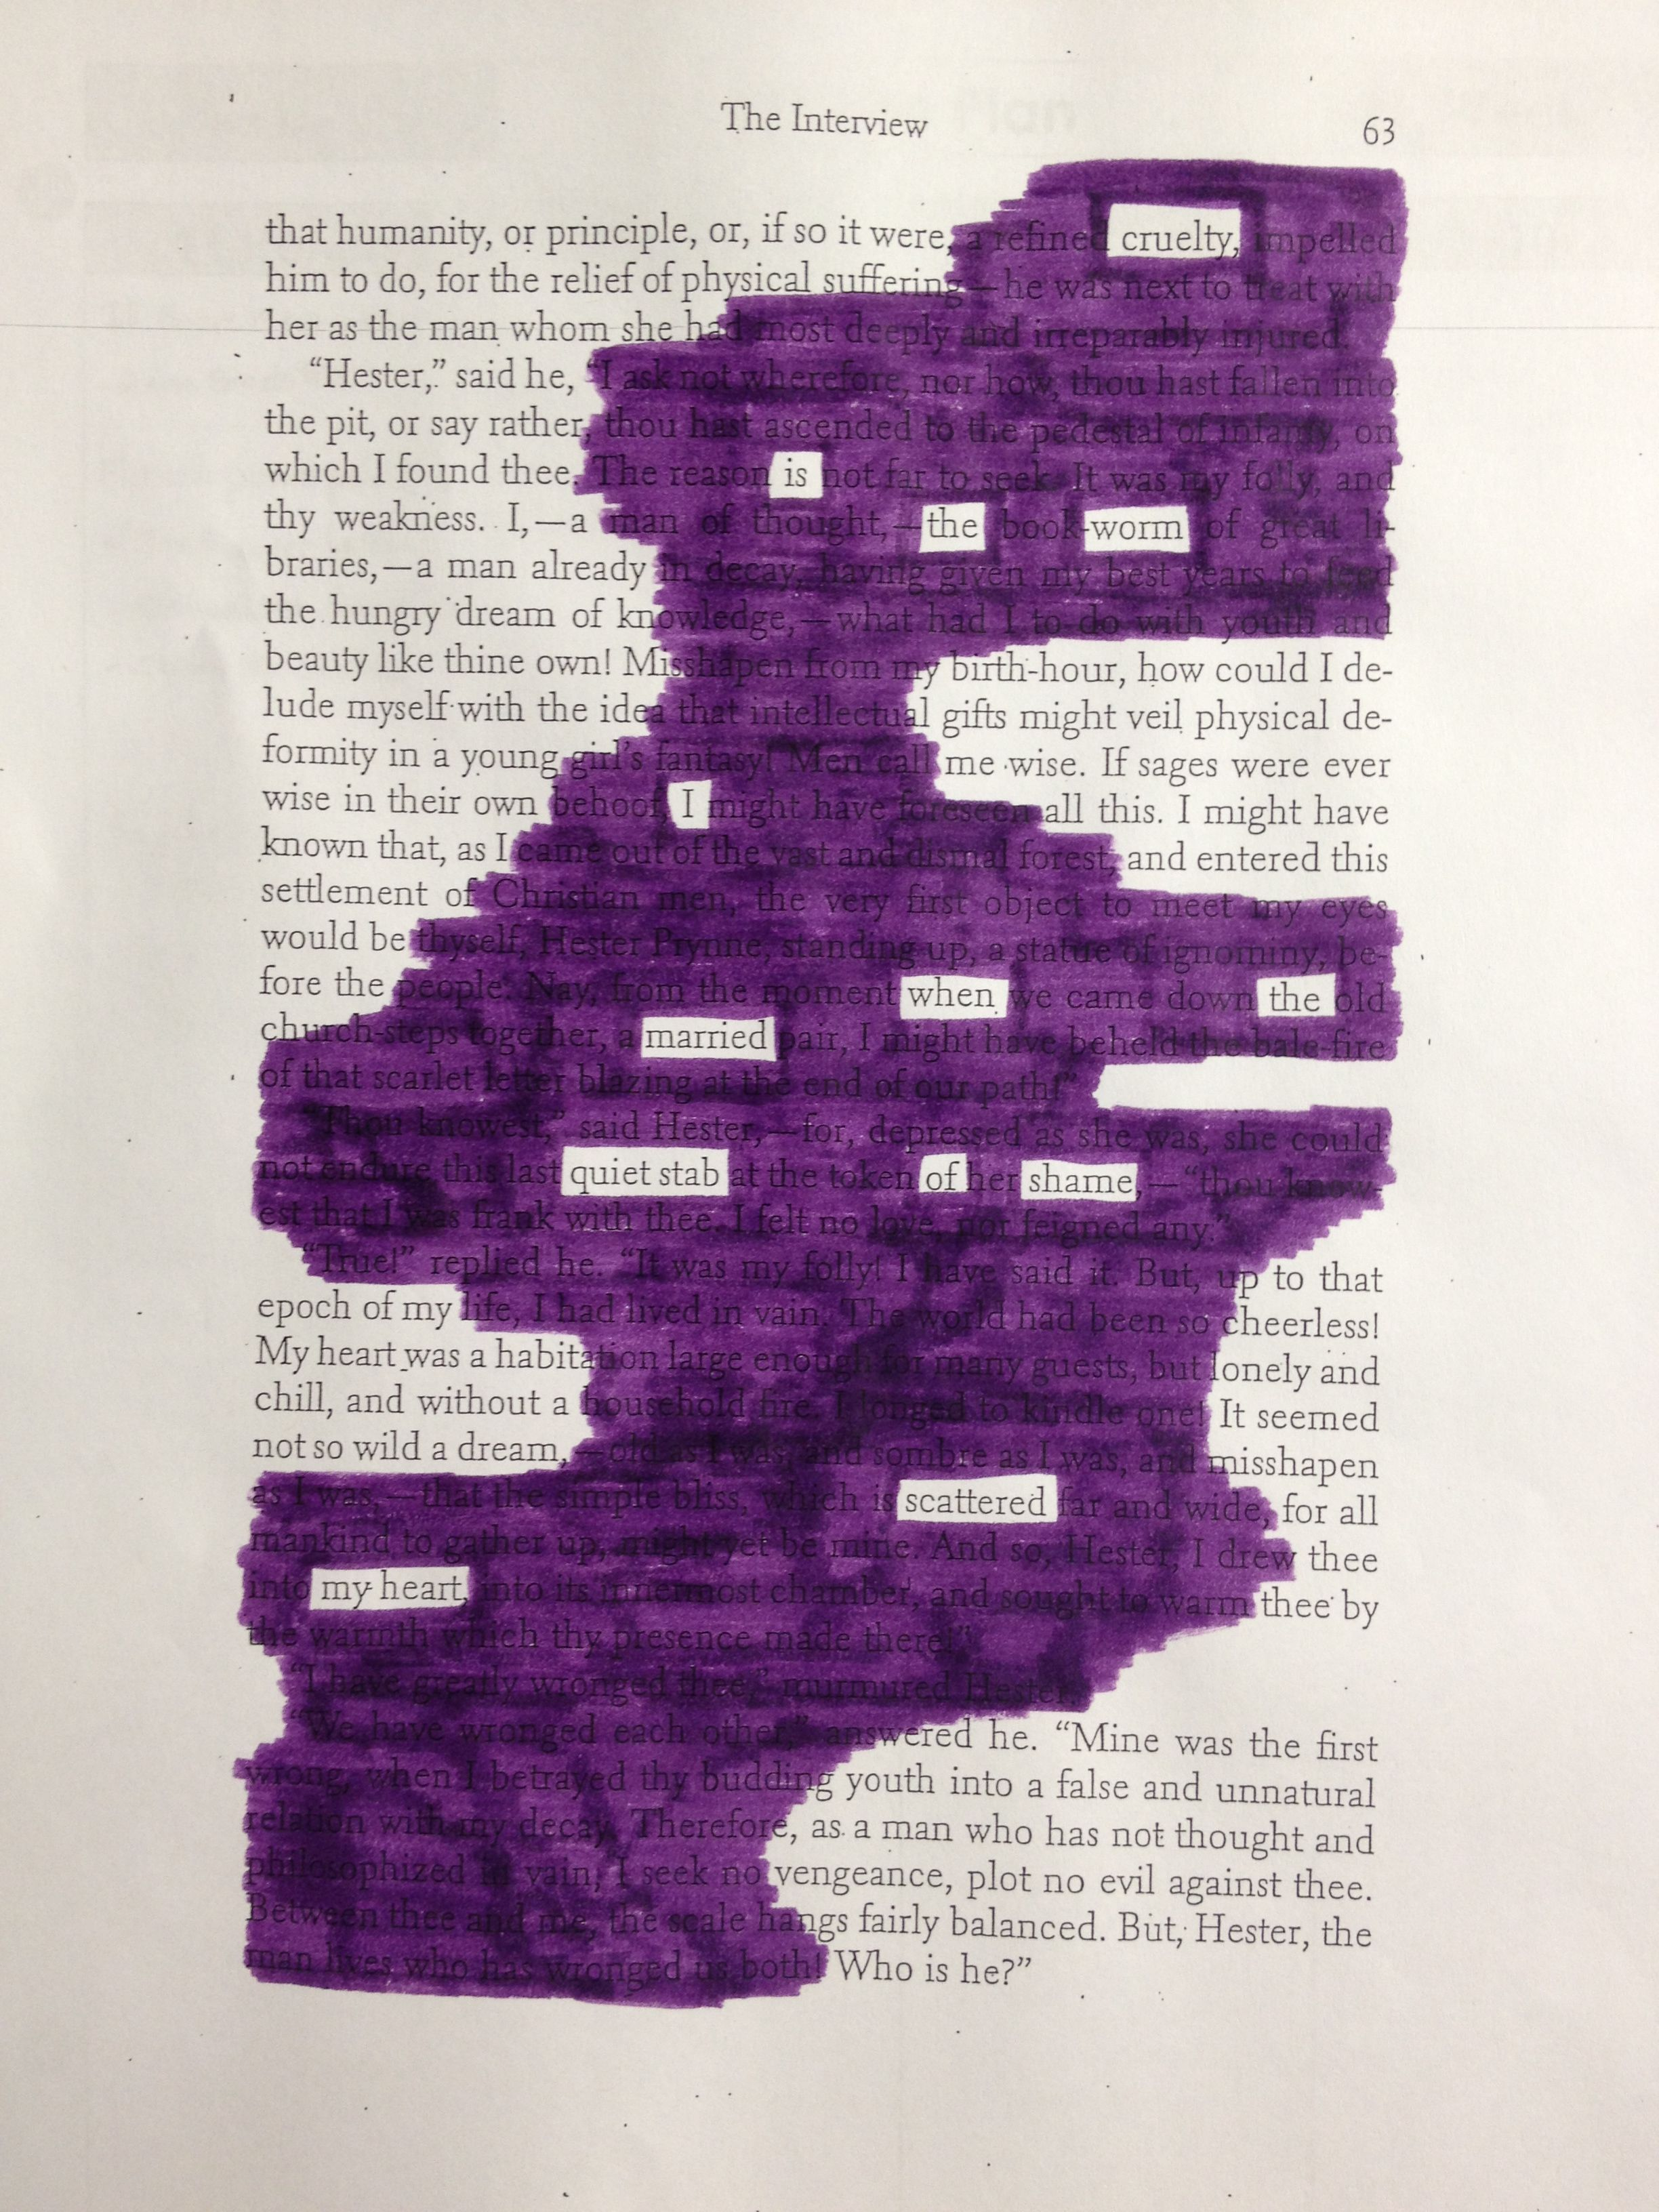 The Scarlet Letter Blackout Poetry In class assignment